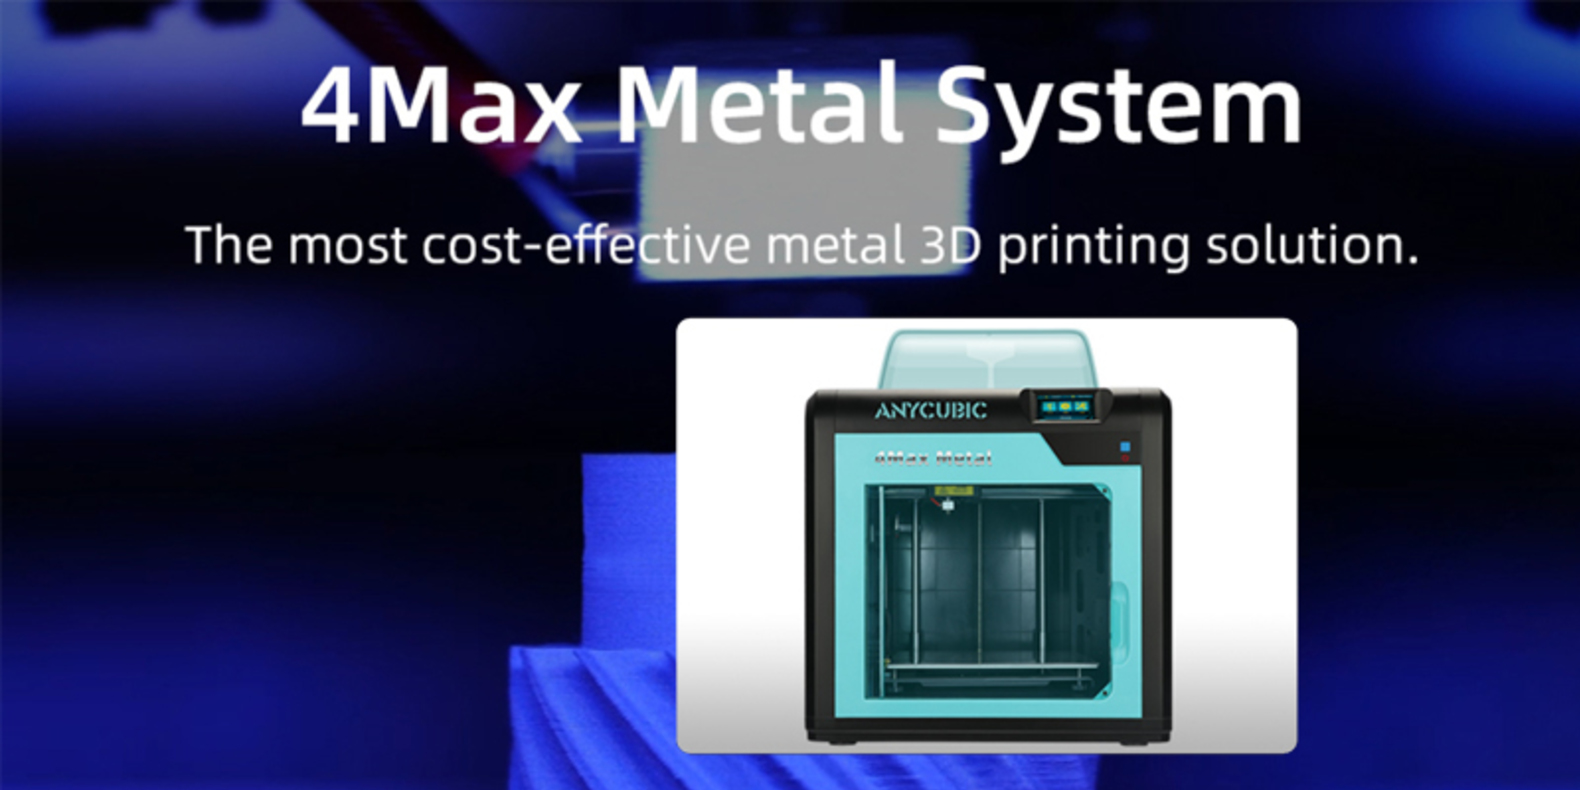 Anycubic 4 Max Metal: affordable solution provider for metal 3D printing